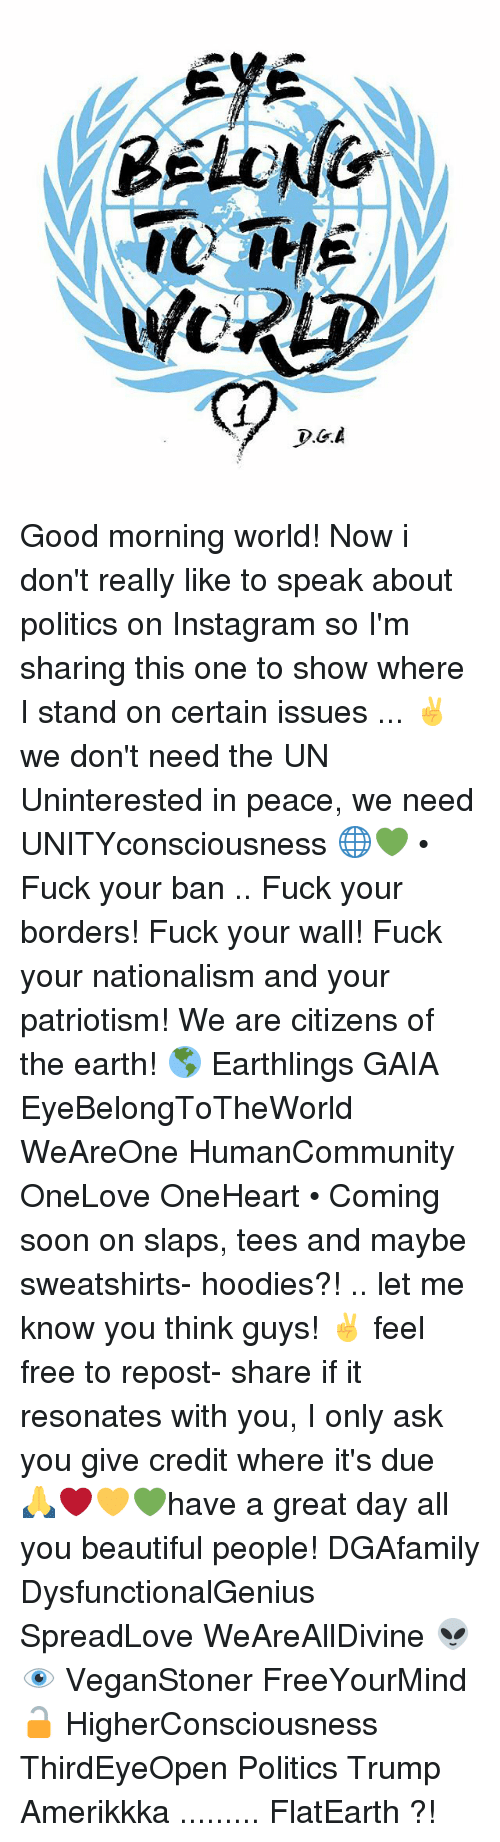 Memes, 🤖, and Gaia: BELONG  WORD Good morning world! Now i don't really like to speak about politics on Instagram so I'm sharing this one to show where I stand on certain issues ... ✌️️we don't need the UN Uninterested in peace, we need UNITYconsciousness 🌐💚 • Fuck your ban .. Fuck your borders! Fuck your wall! Fuck your nationalism and your patriotism! We are citizens of the earth! 🌎 Earthlings GAIA EyeBelongToTheWorld WeAreOne HumanCommunity OneLove OneHeart • Coming soon on slaps, tees and maybe sweatshirts- hoodies?! .. let me know you think guys! ✌️️ feel free to repost- share if it resonates with you, I only ask you give credit where it's due 🙏❤️💛💚have a great day all you beautiful people! DGAfamily DysfunctionalGenius SpreadLove WeAreAllDivine 👽👁 VeganStoner FreeYourMind 🔓 HigherConsciousness ThirdEyeOpen Politics Trump Amerikkka ......... FlatEarth ?!